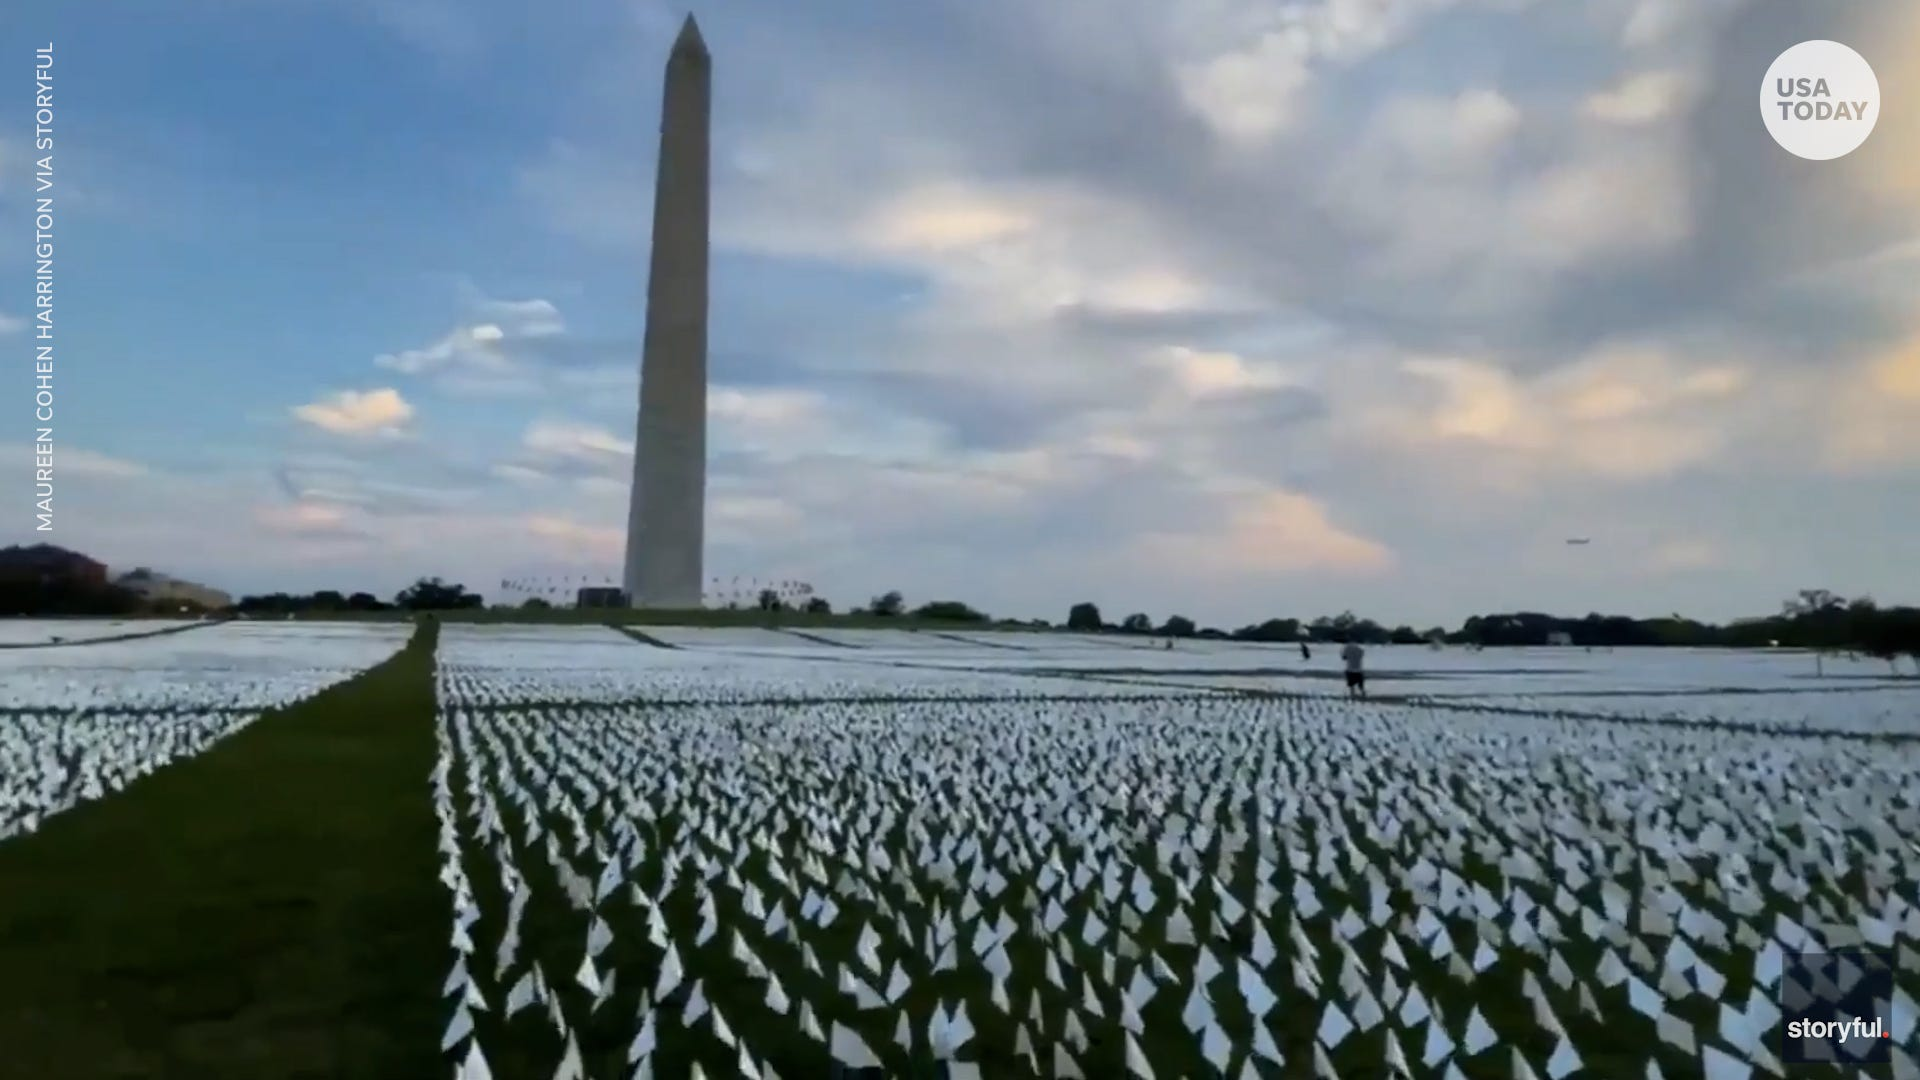 National Mall covered in 660,000 white flags representing COVID deaths in the US